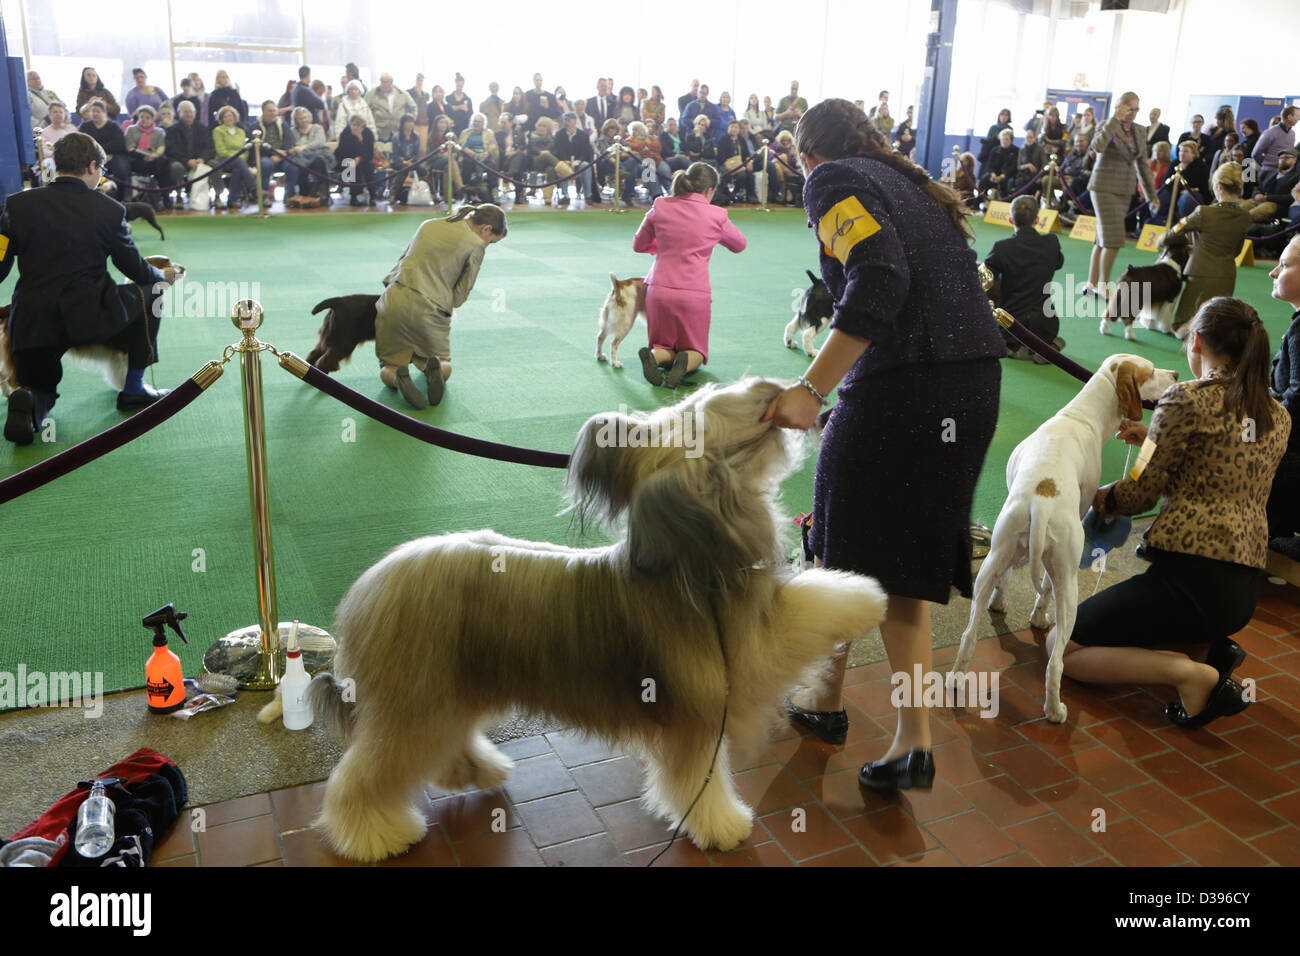 New York City, US, 12 February 2013. The Briard Cagney frolics with his handler while waiting to enter the ring. Stock Photo